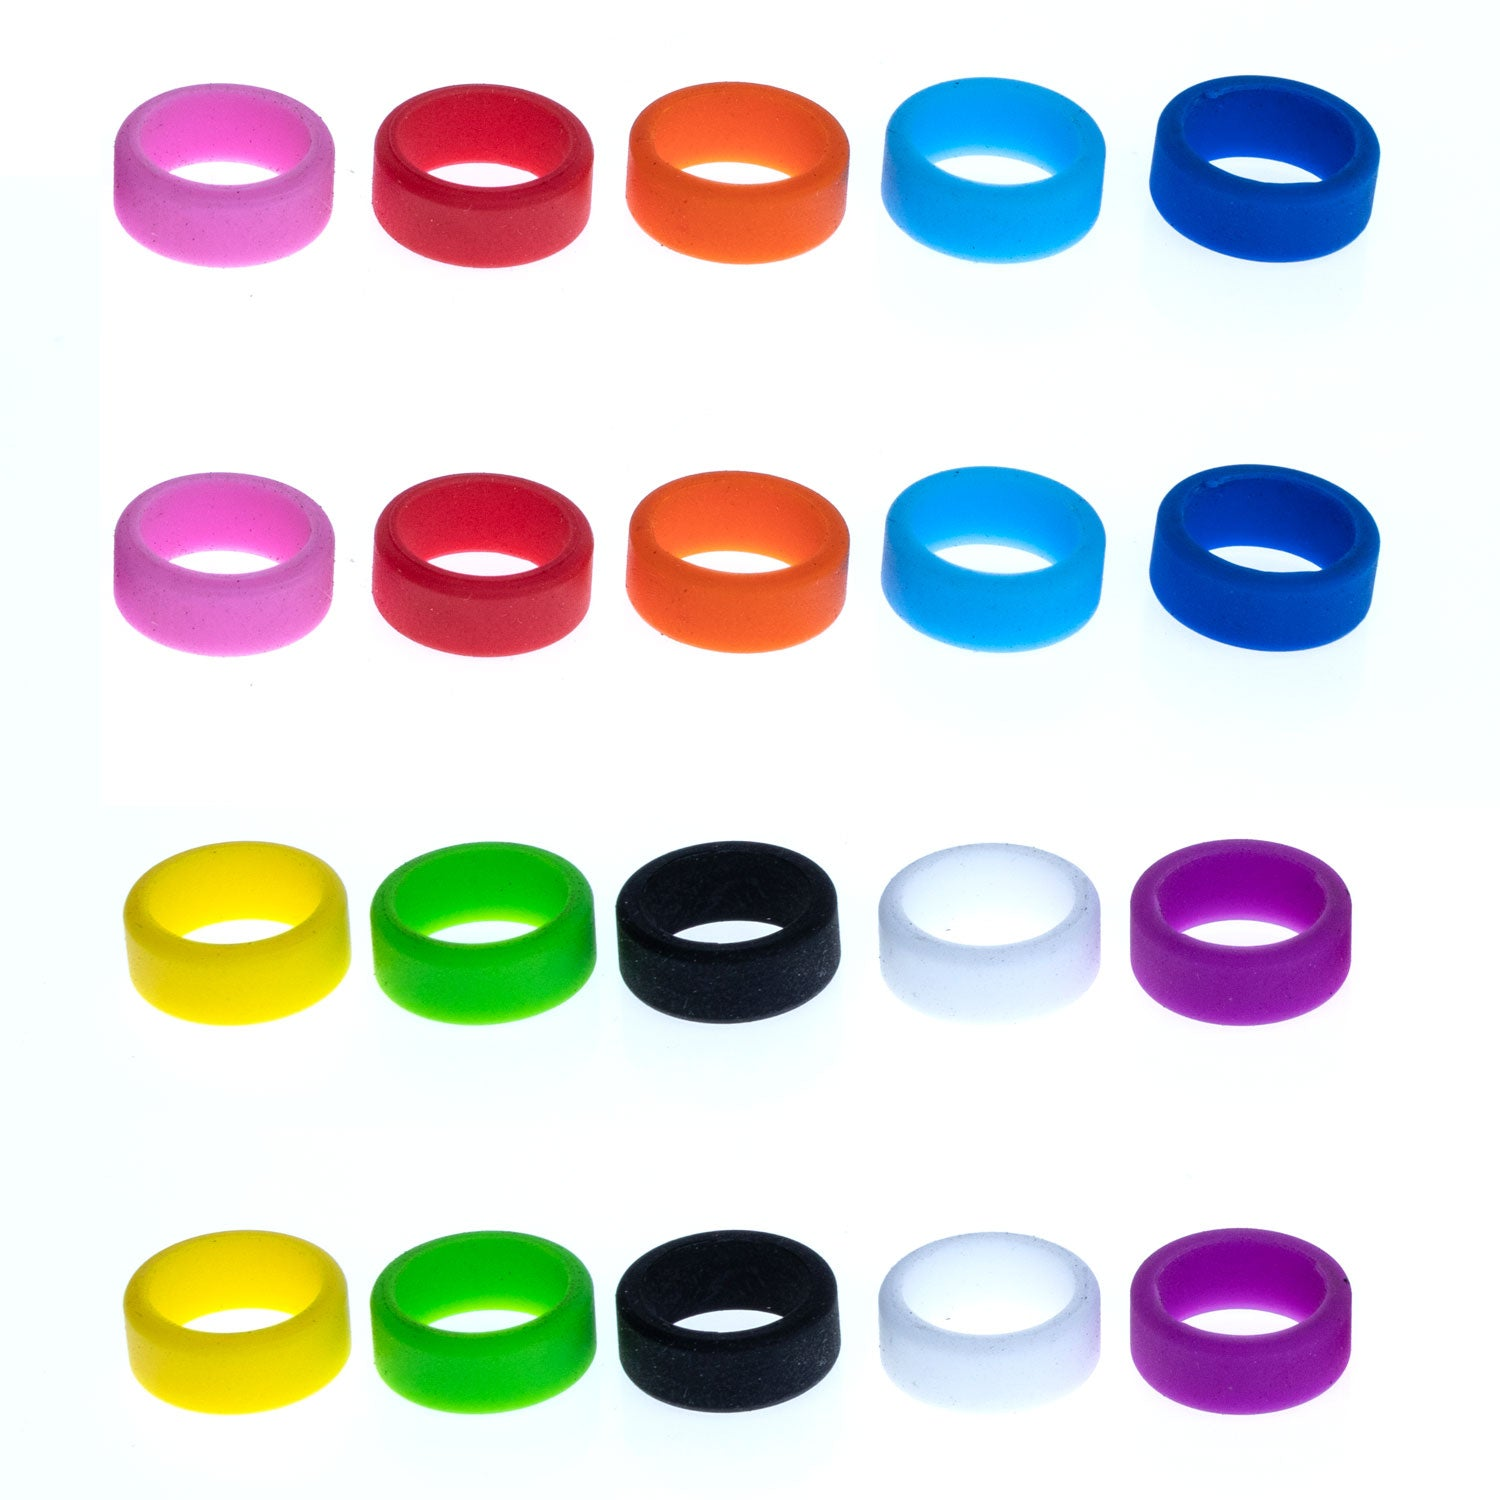 Grifiti Band Joes 1 x 0.25 inch Mini Silicone Bands 20 pack for Cords Rings Gaskets Wraps - Grifiti